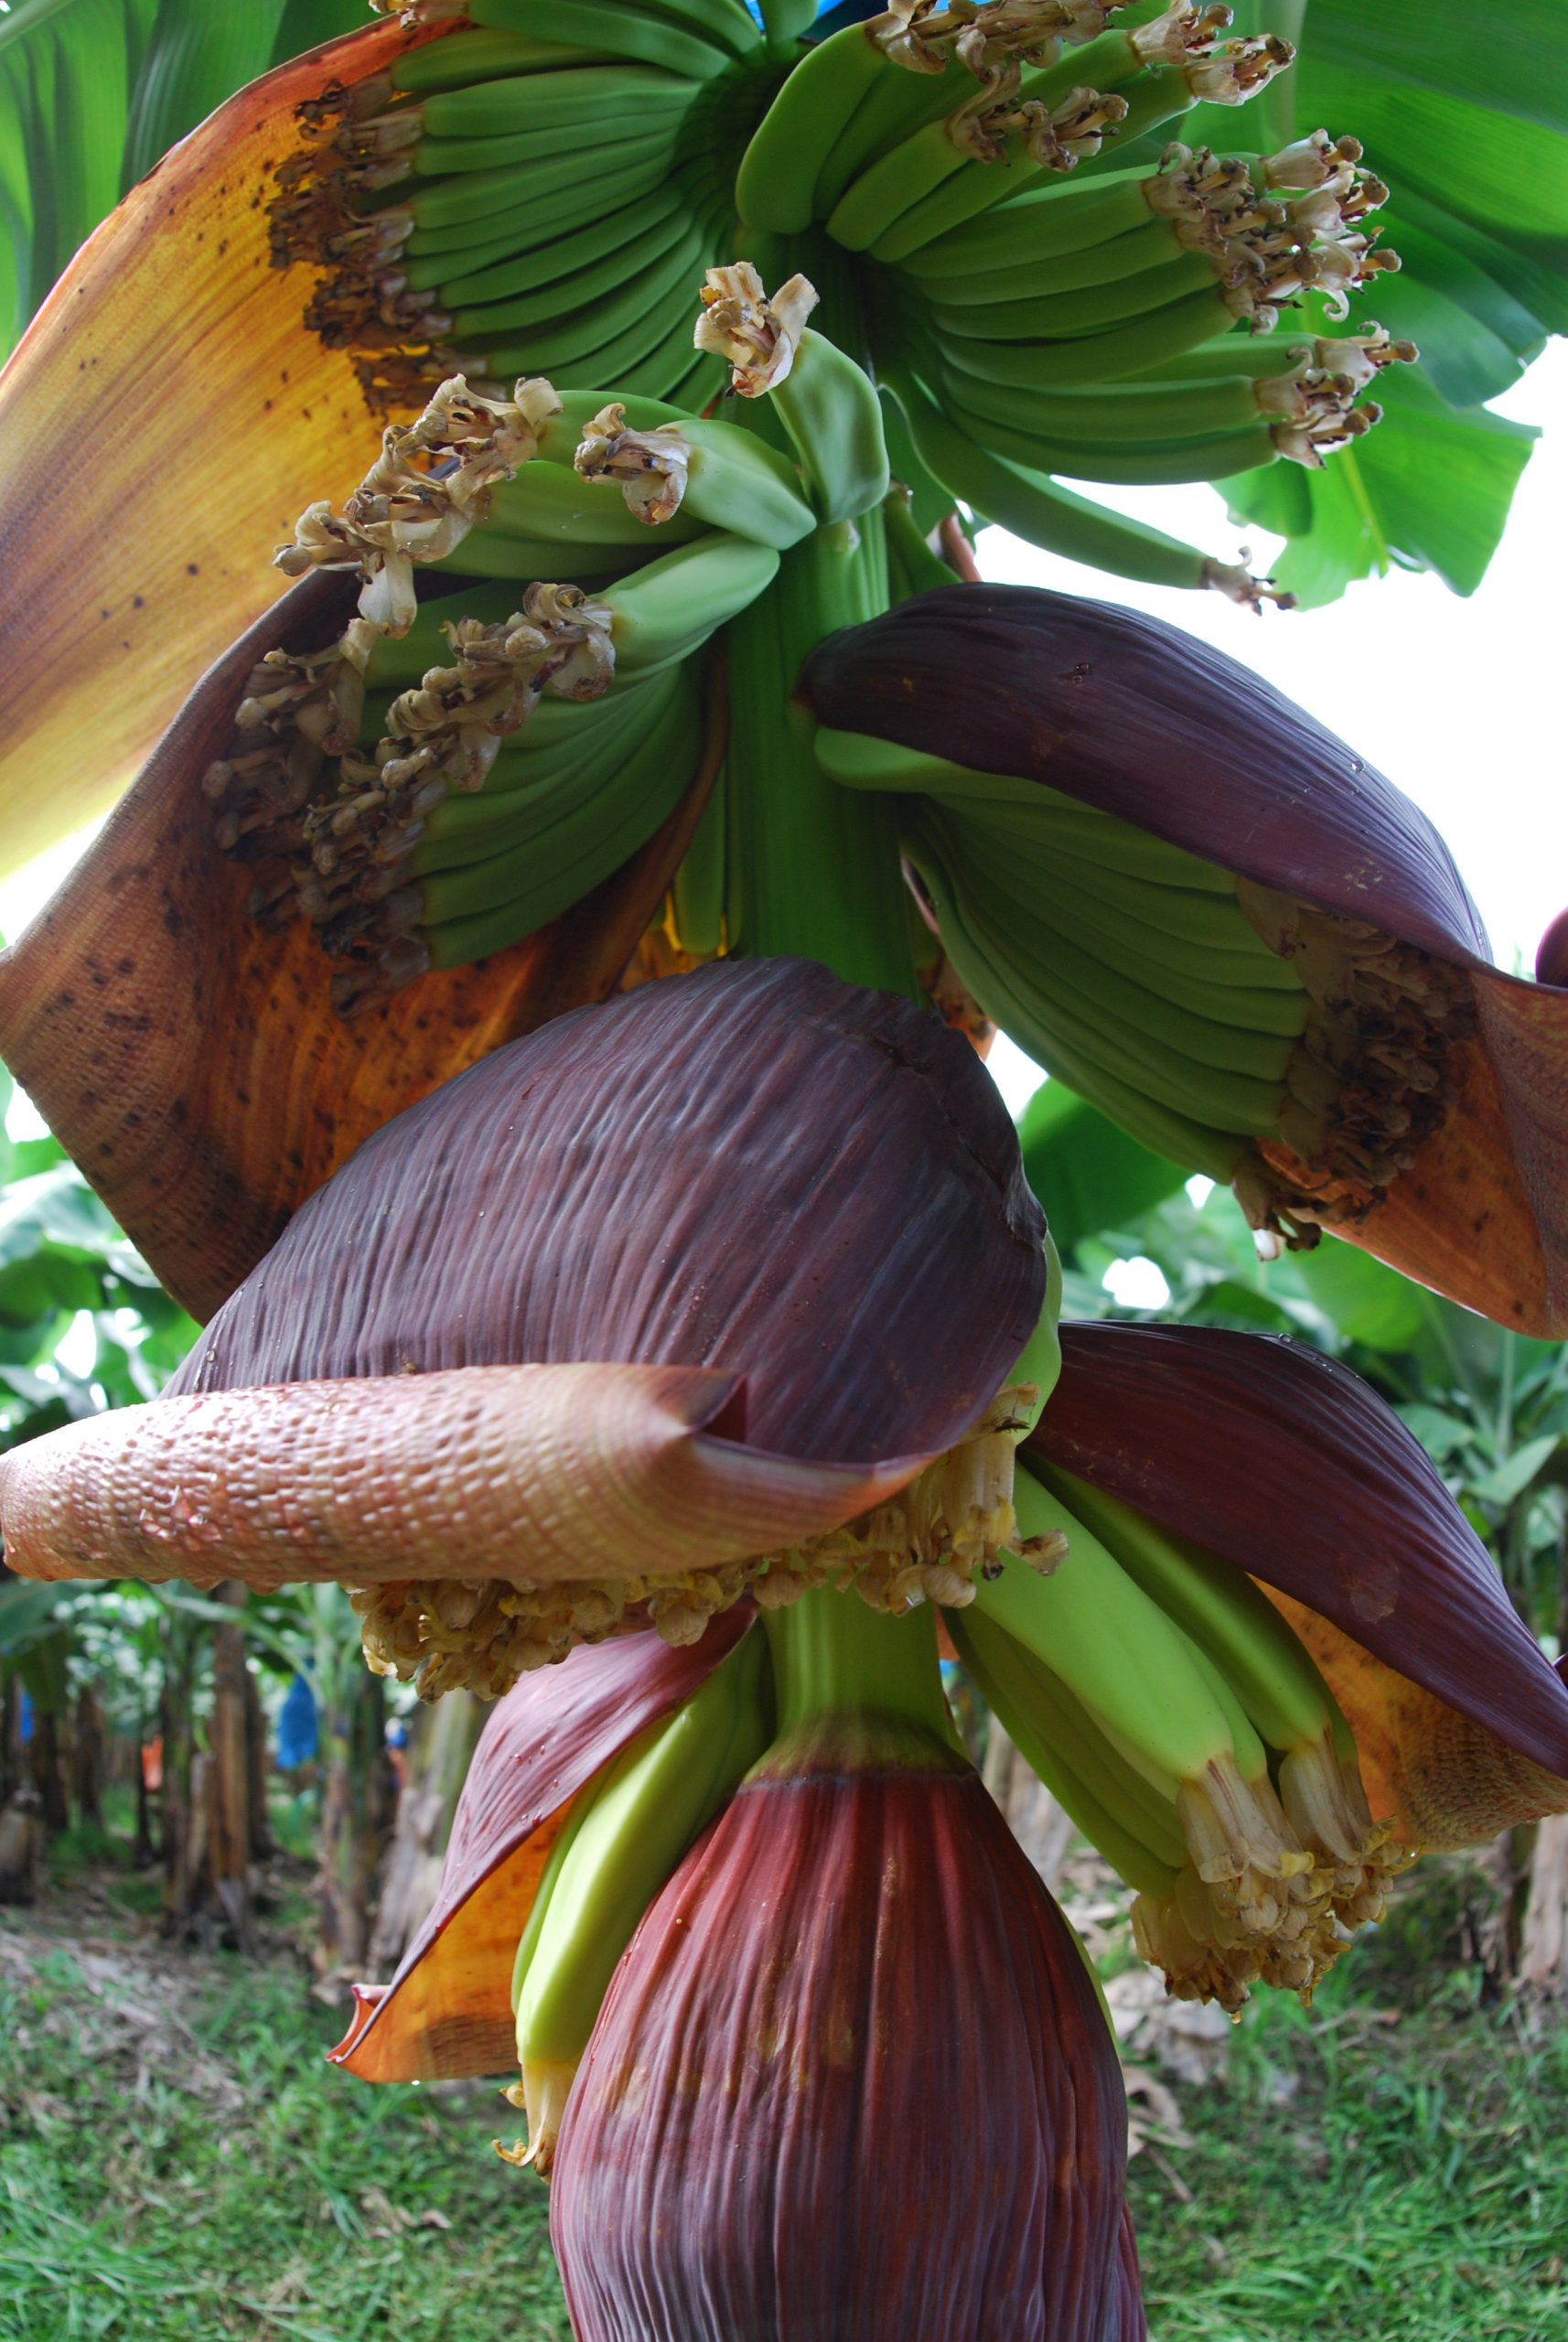 Banana flowers and young fruits